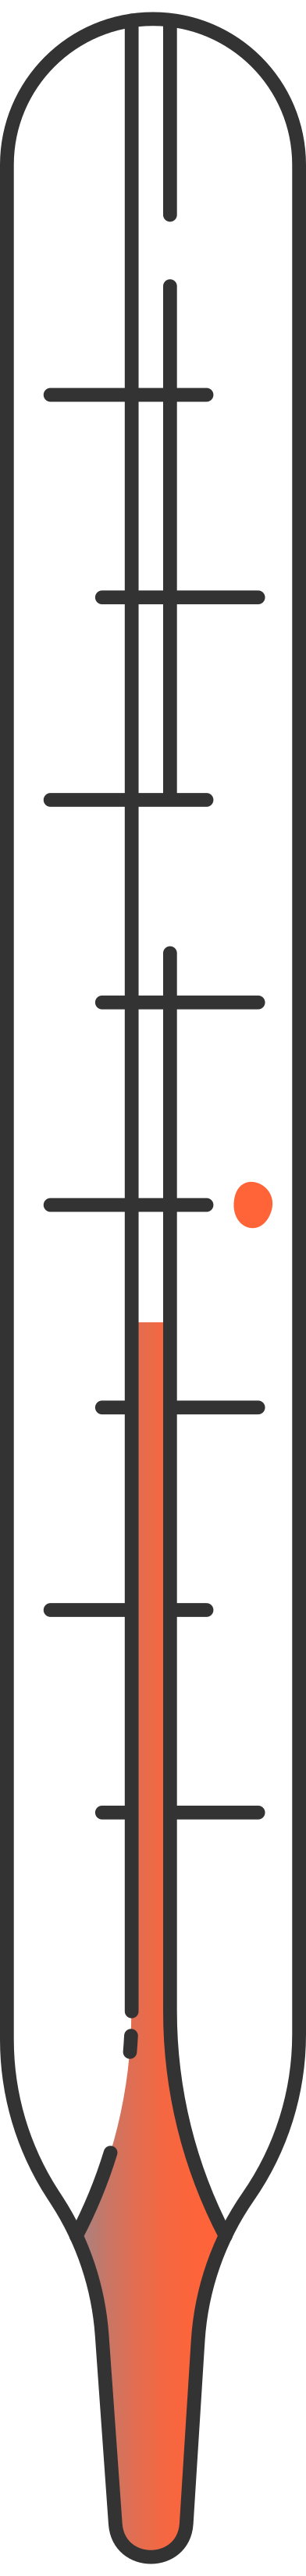 style thermometer images in PNG and SVG | Icons8 Illustrations